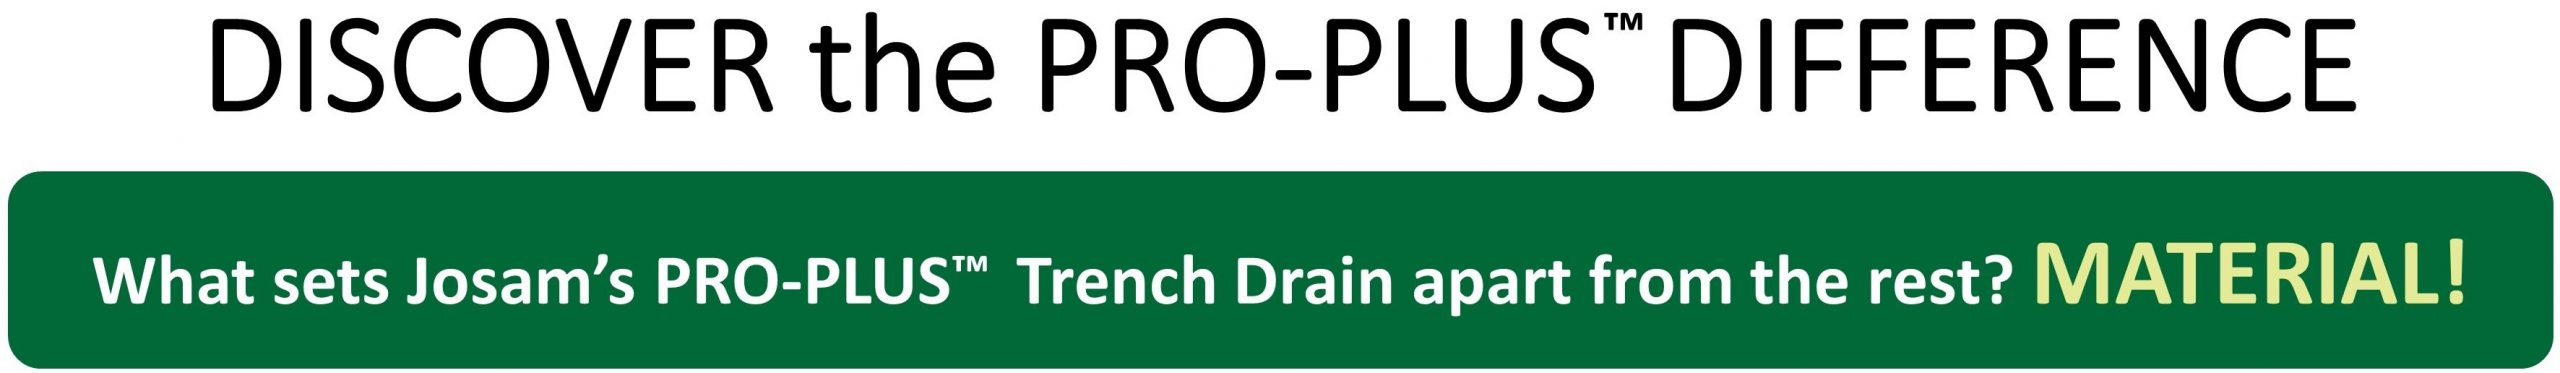 PRO-PLUS Trench Drain System